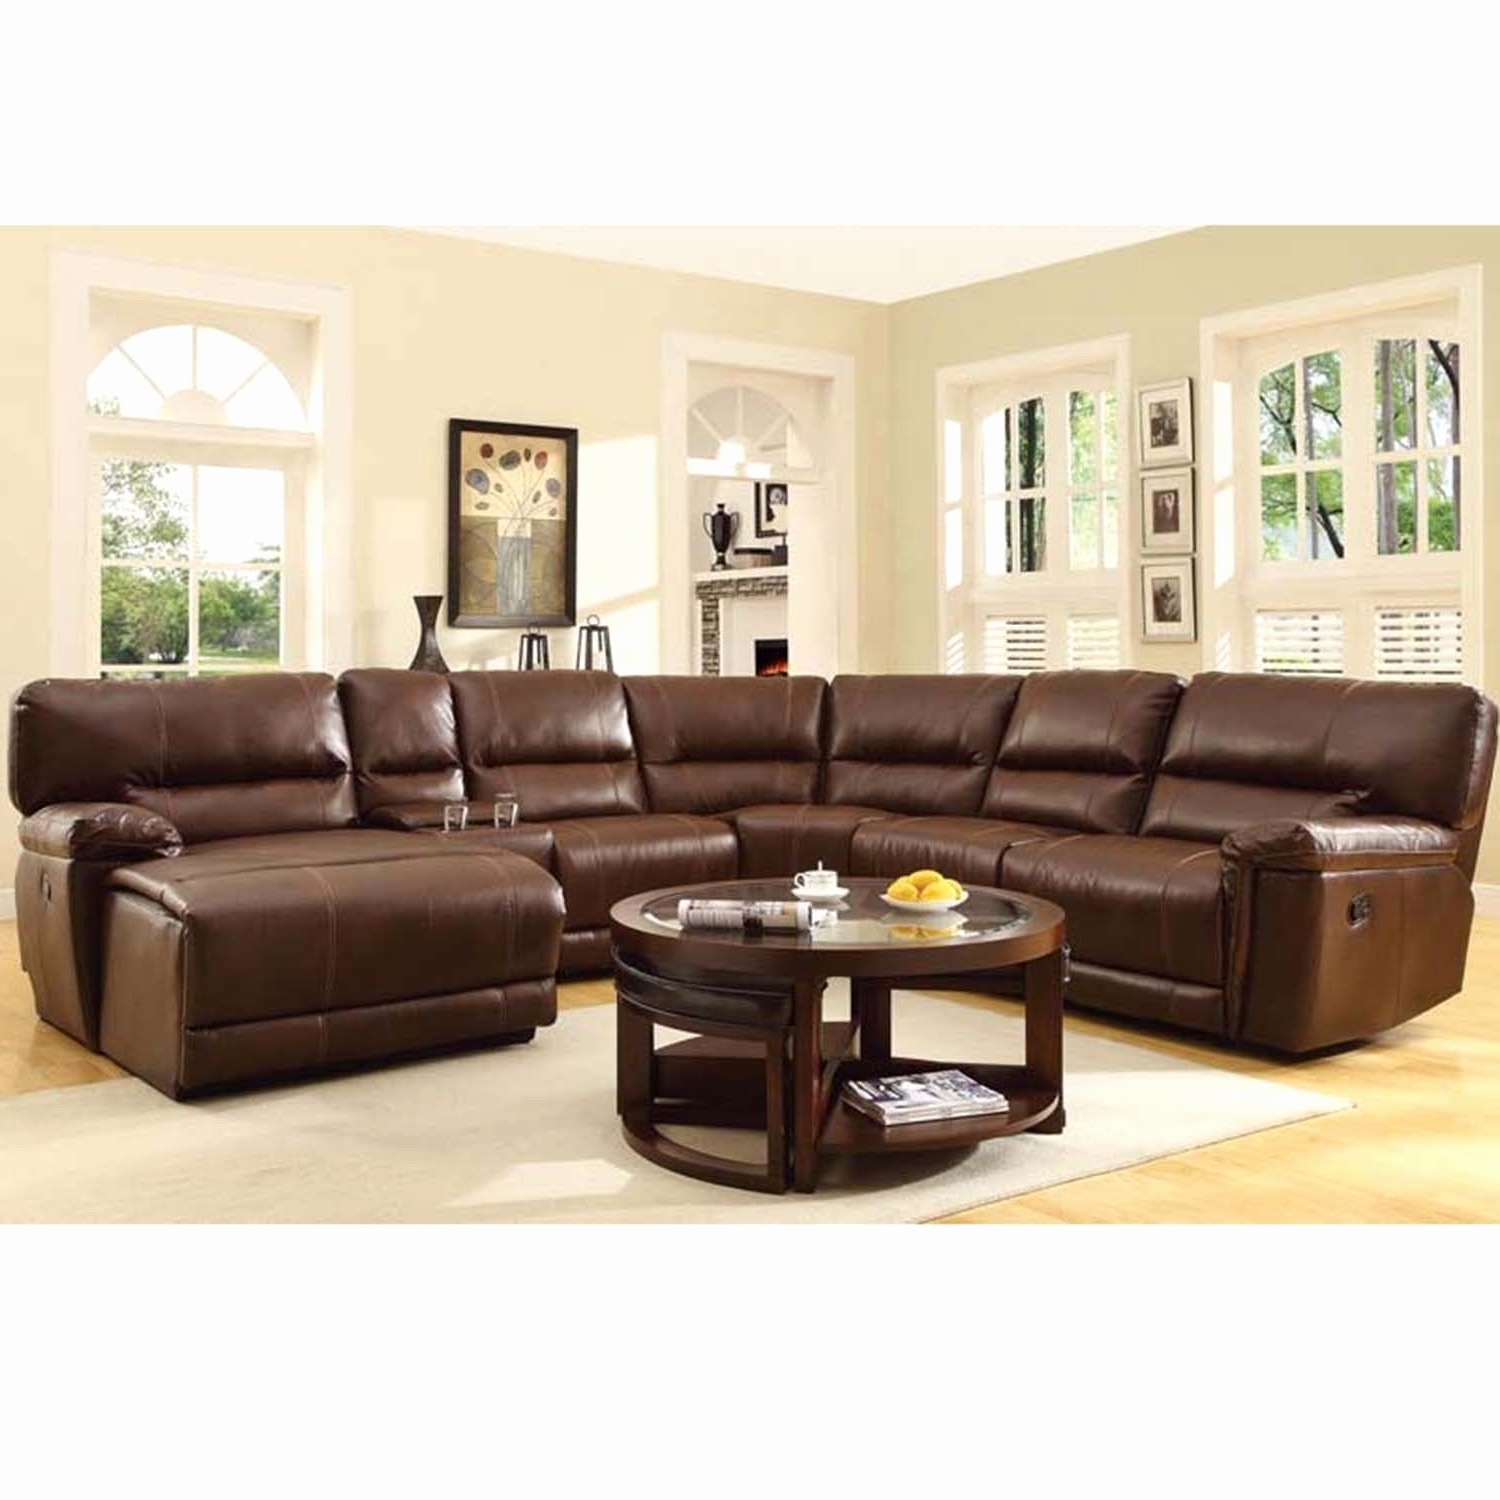 Sectional Sofas For Small Rooms With Popular Sofas : Sofa For Small Living Room Gray Sectional Living Room (View 15 of 20)